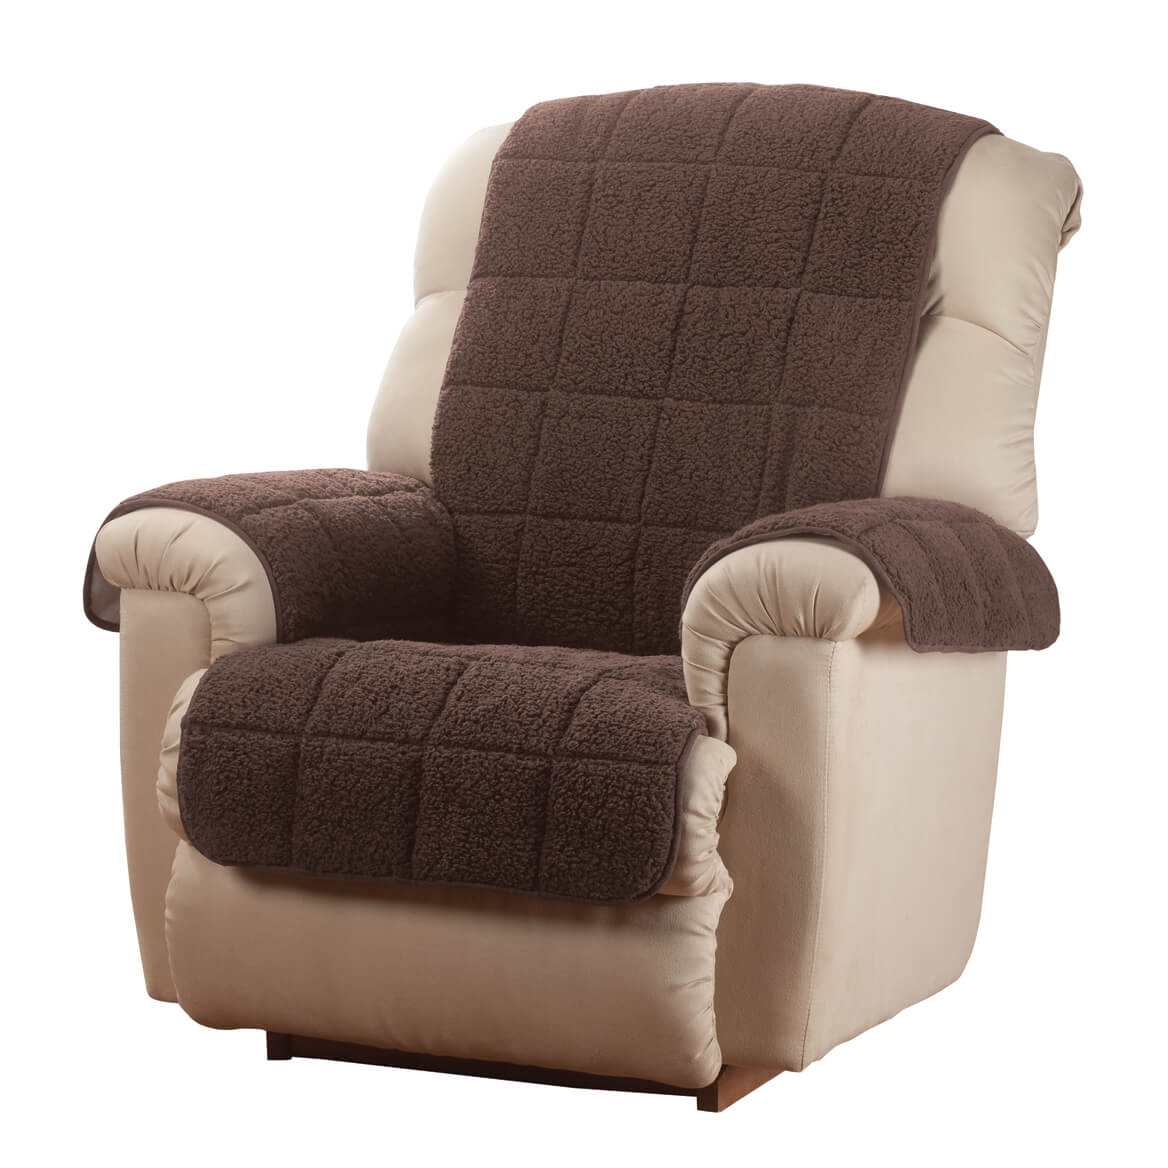 Waterproof Quilted Sherpa Recliner Cover by OakRidgeTM  sc 1 st  Walmart & Recliner Covers islam-shia.org